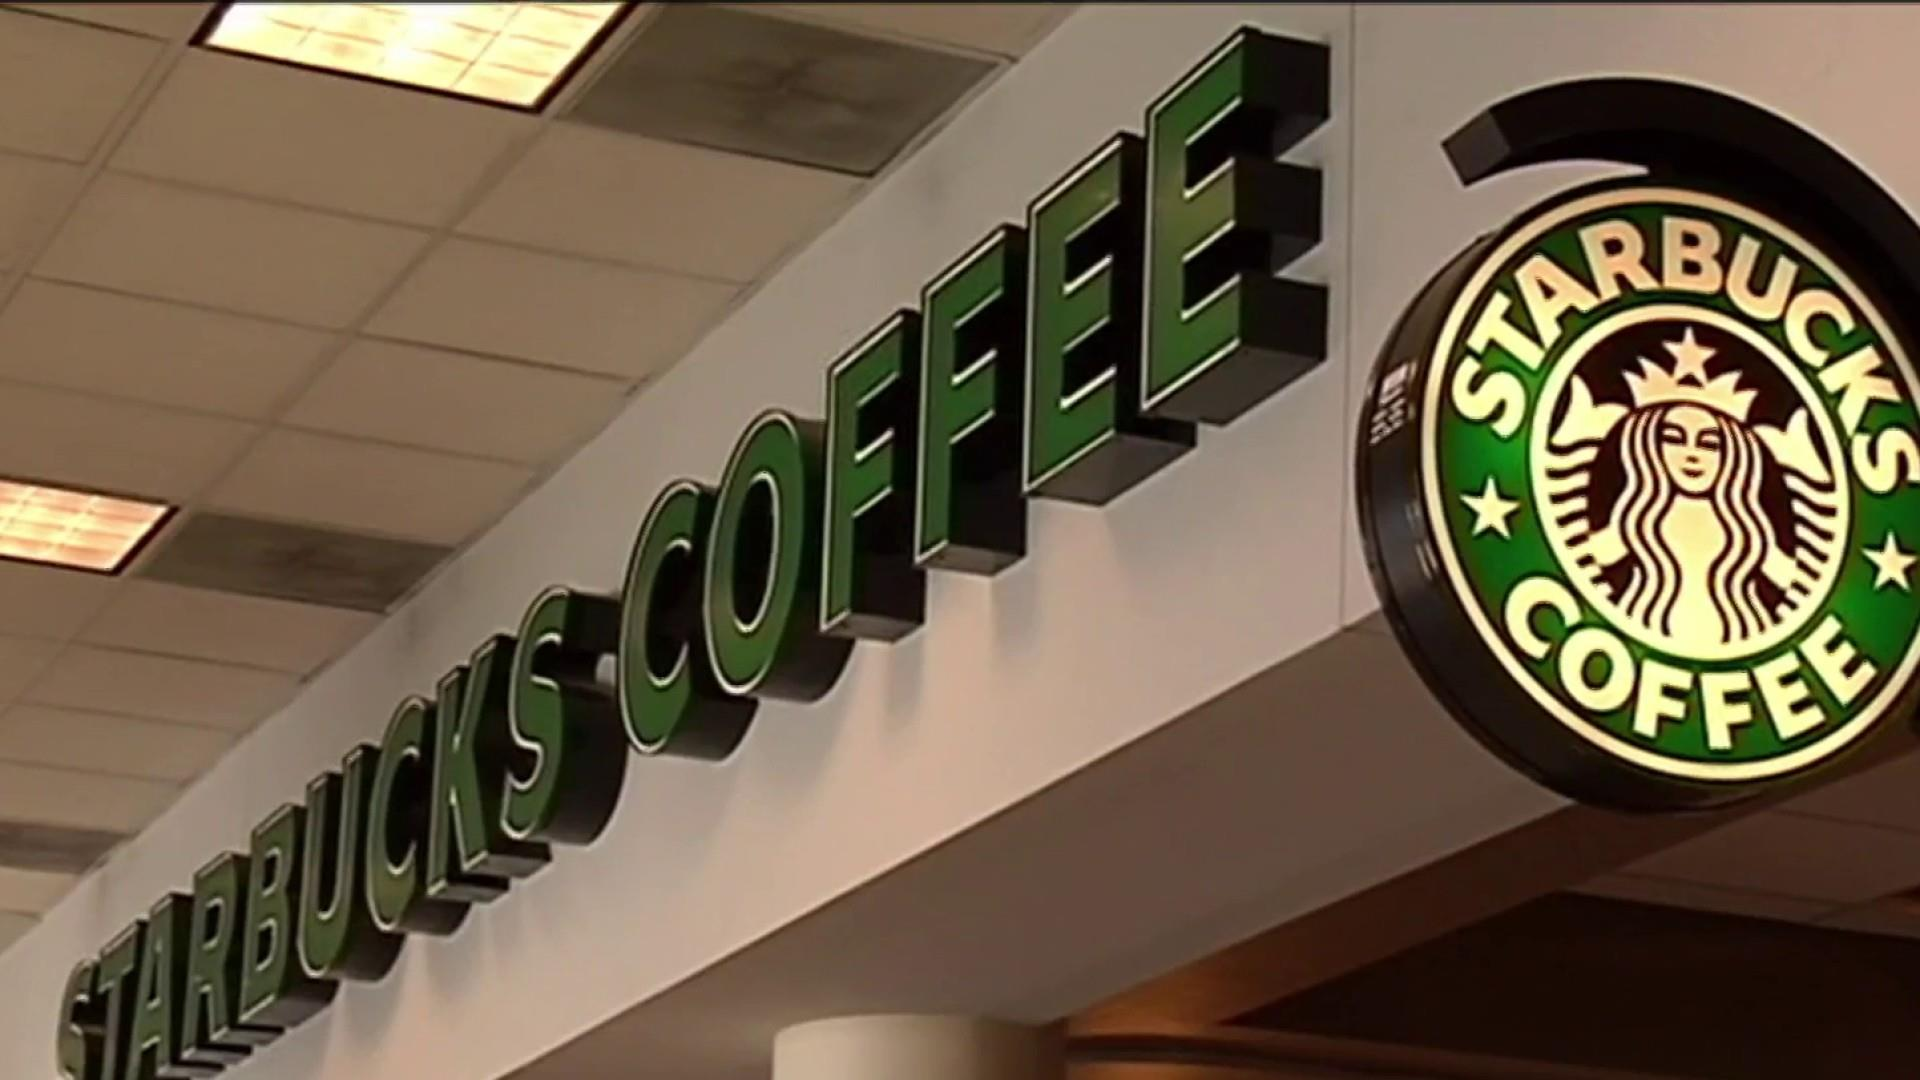 Arrest witness: 'I'm cautiously optimistic' about Starbucks response